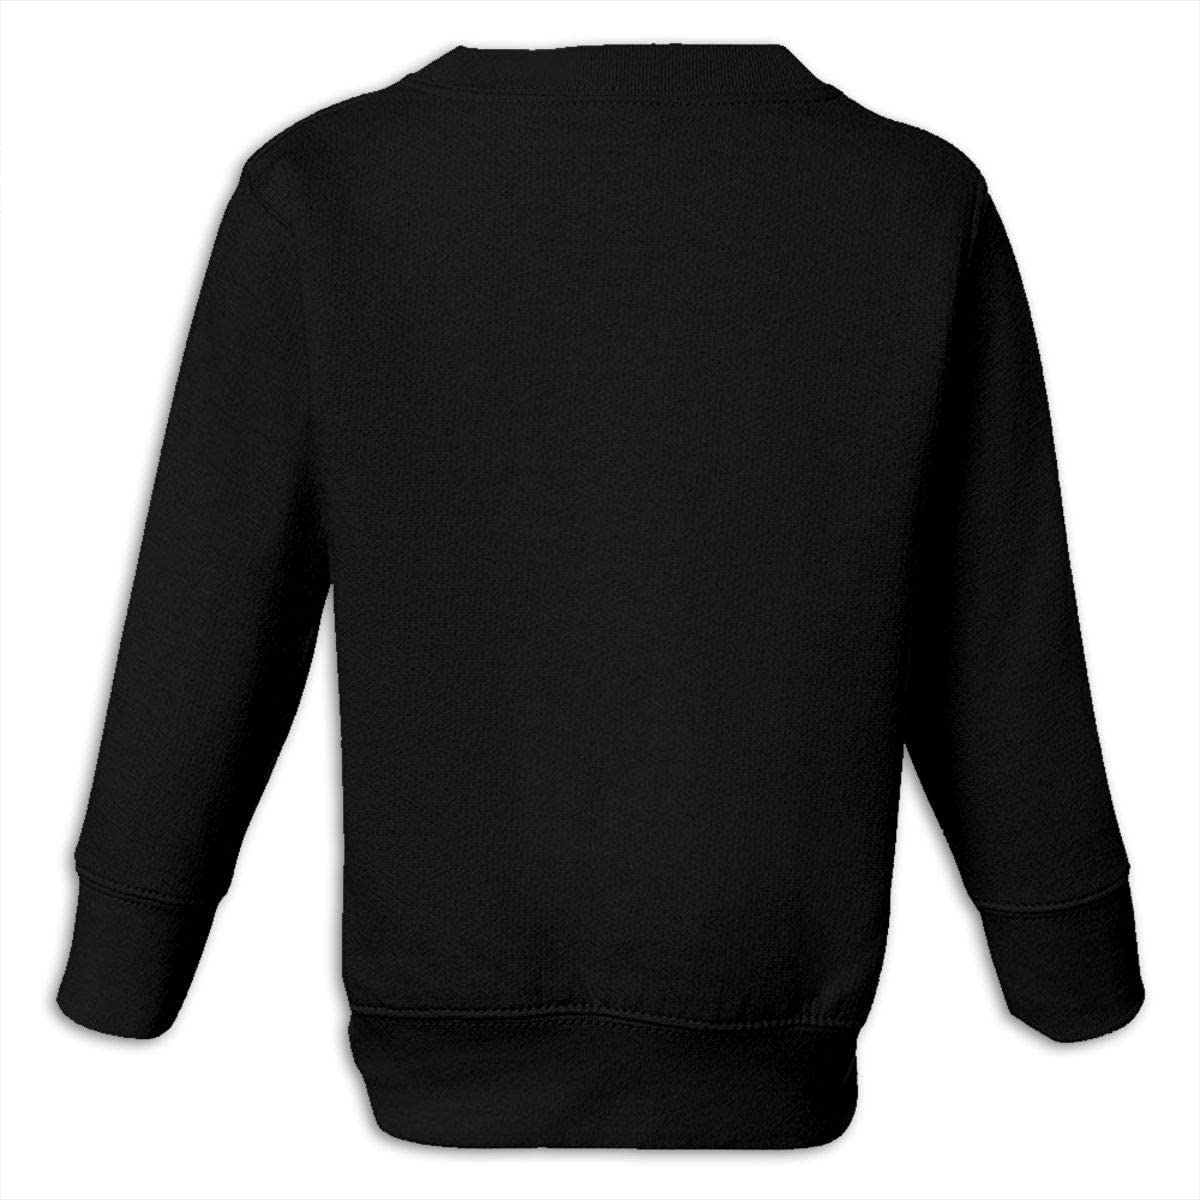 Superlucky Hemp Leaf Boys Girls Pullover Sweaters Crewneck Sweatshirts Clothes for 2-6 Years Old Children